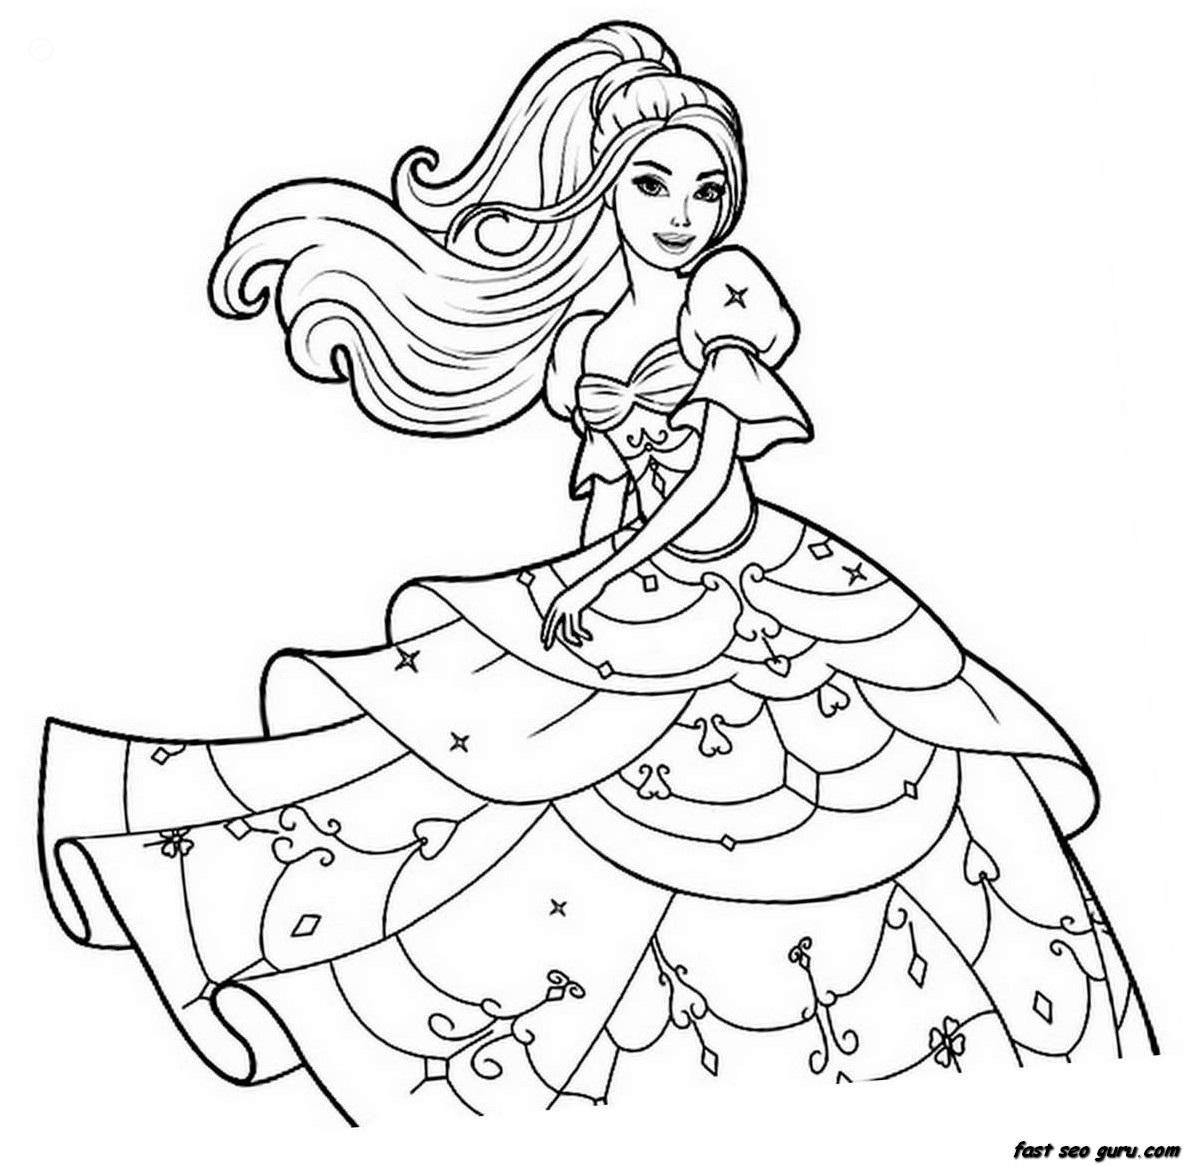 Barbie Princess Printable Coloring Pages - Coloring Home